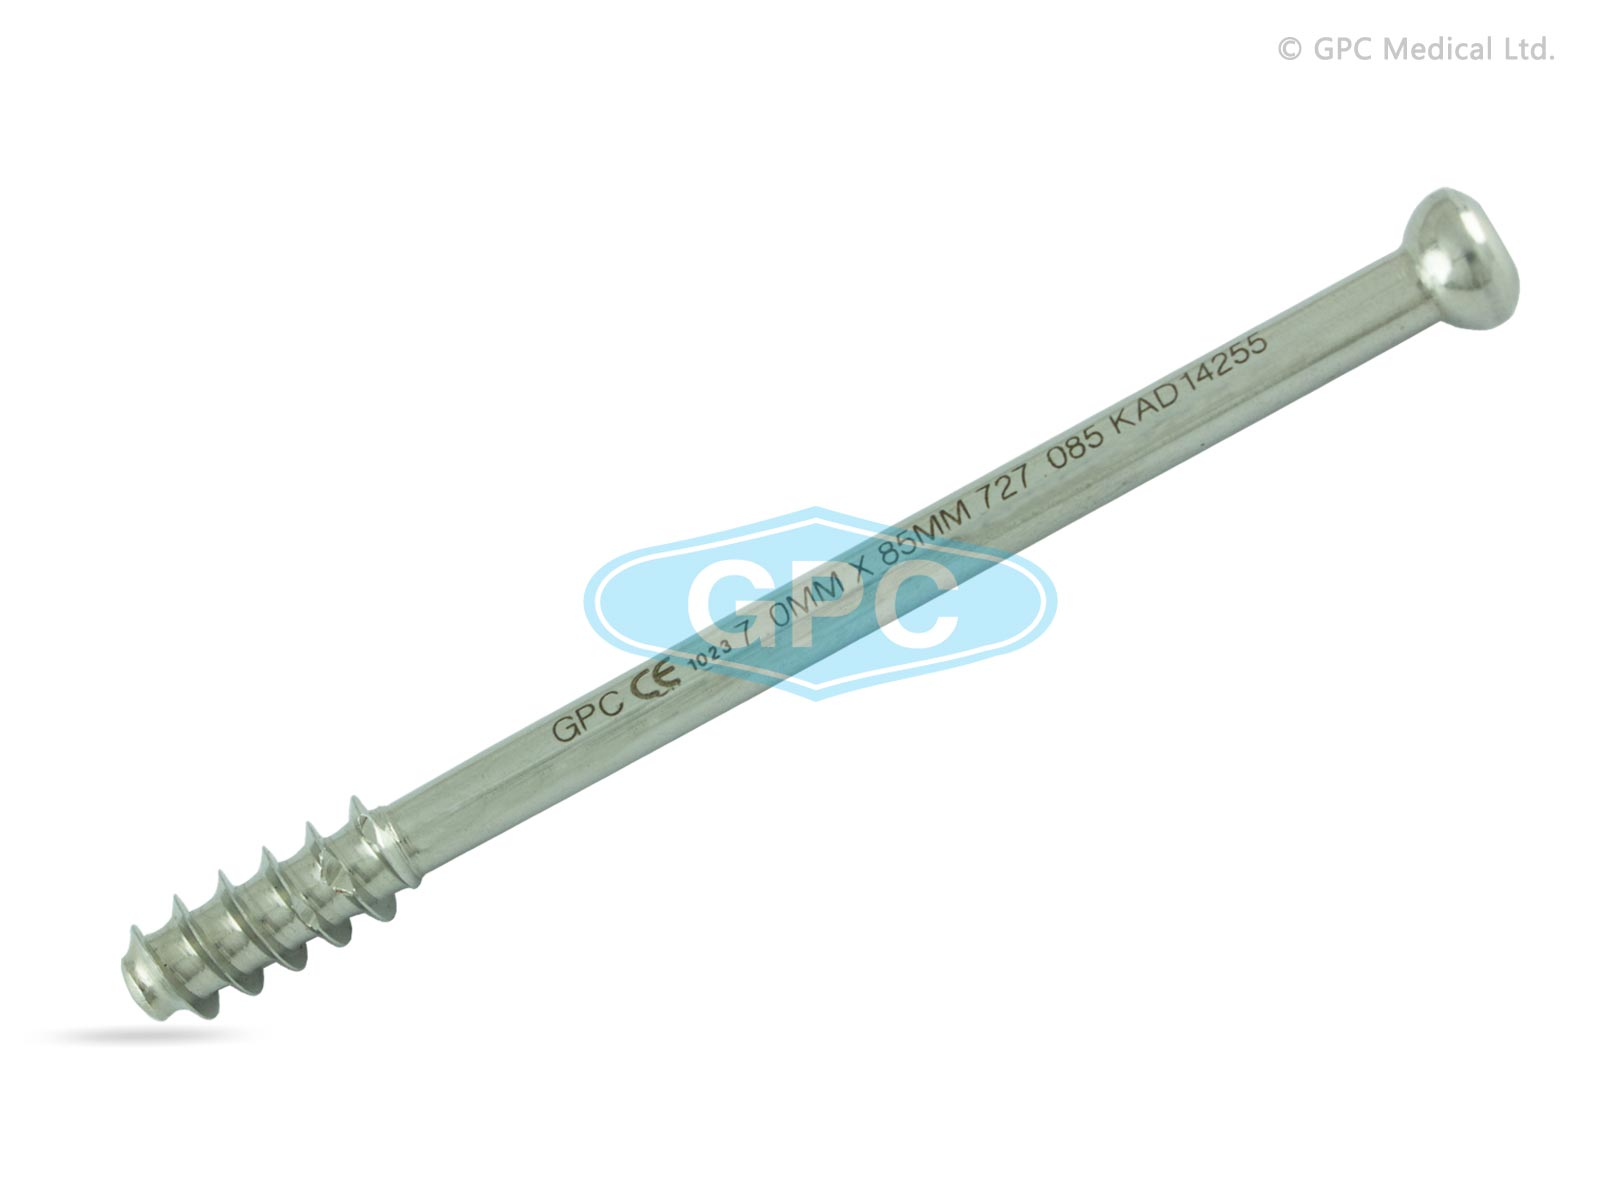 Large Cannulated Cancellous Screw 7.0mm, Hexagonal Socket, 16mm threaded.